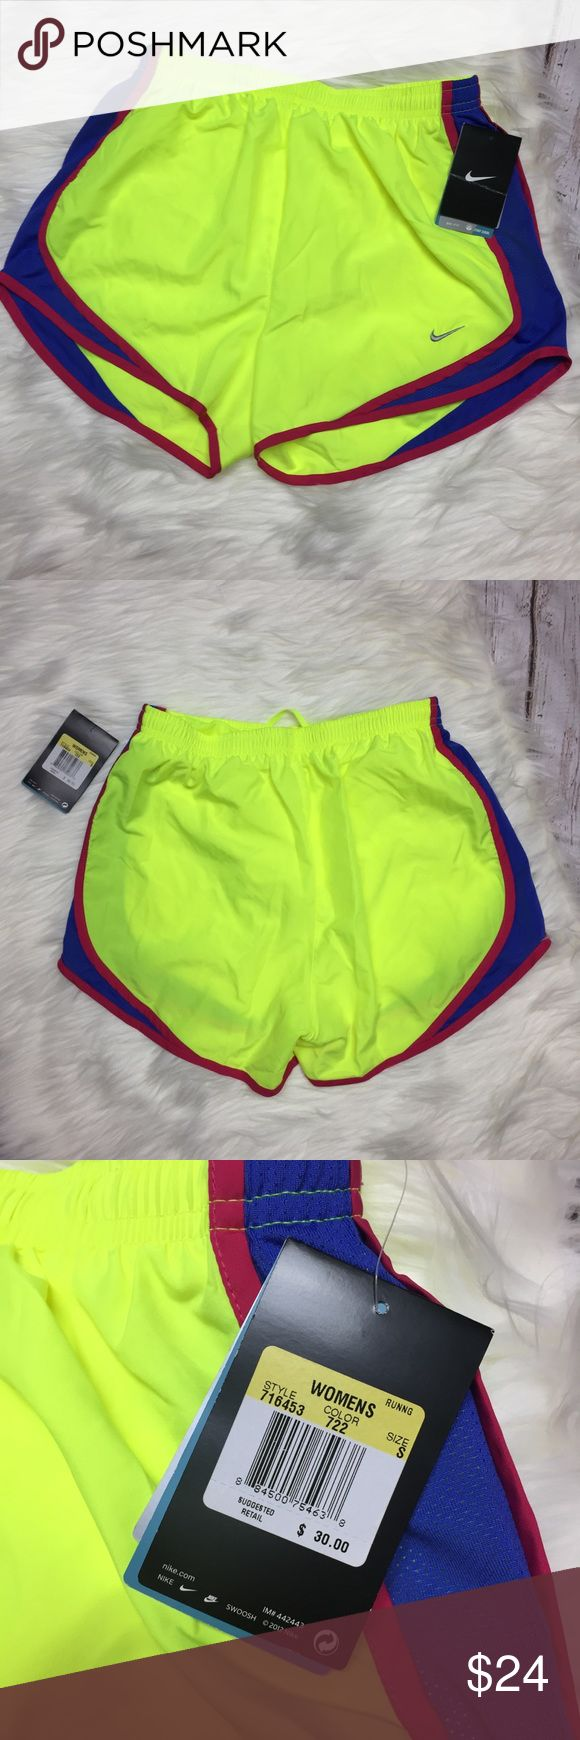 Dri-Fit Nike neon shorts NWT Dri-Fit Nike neon yellow/green shorts. Blue and red side details. NWT. Size small. ✨ no trades, please. Nike Shorts